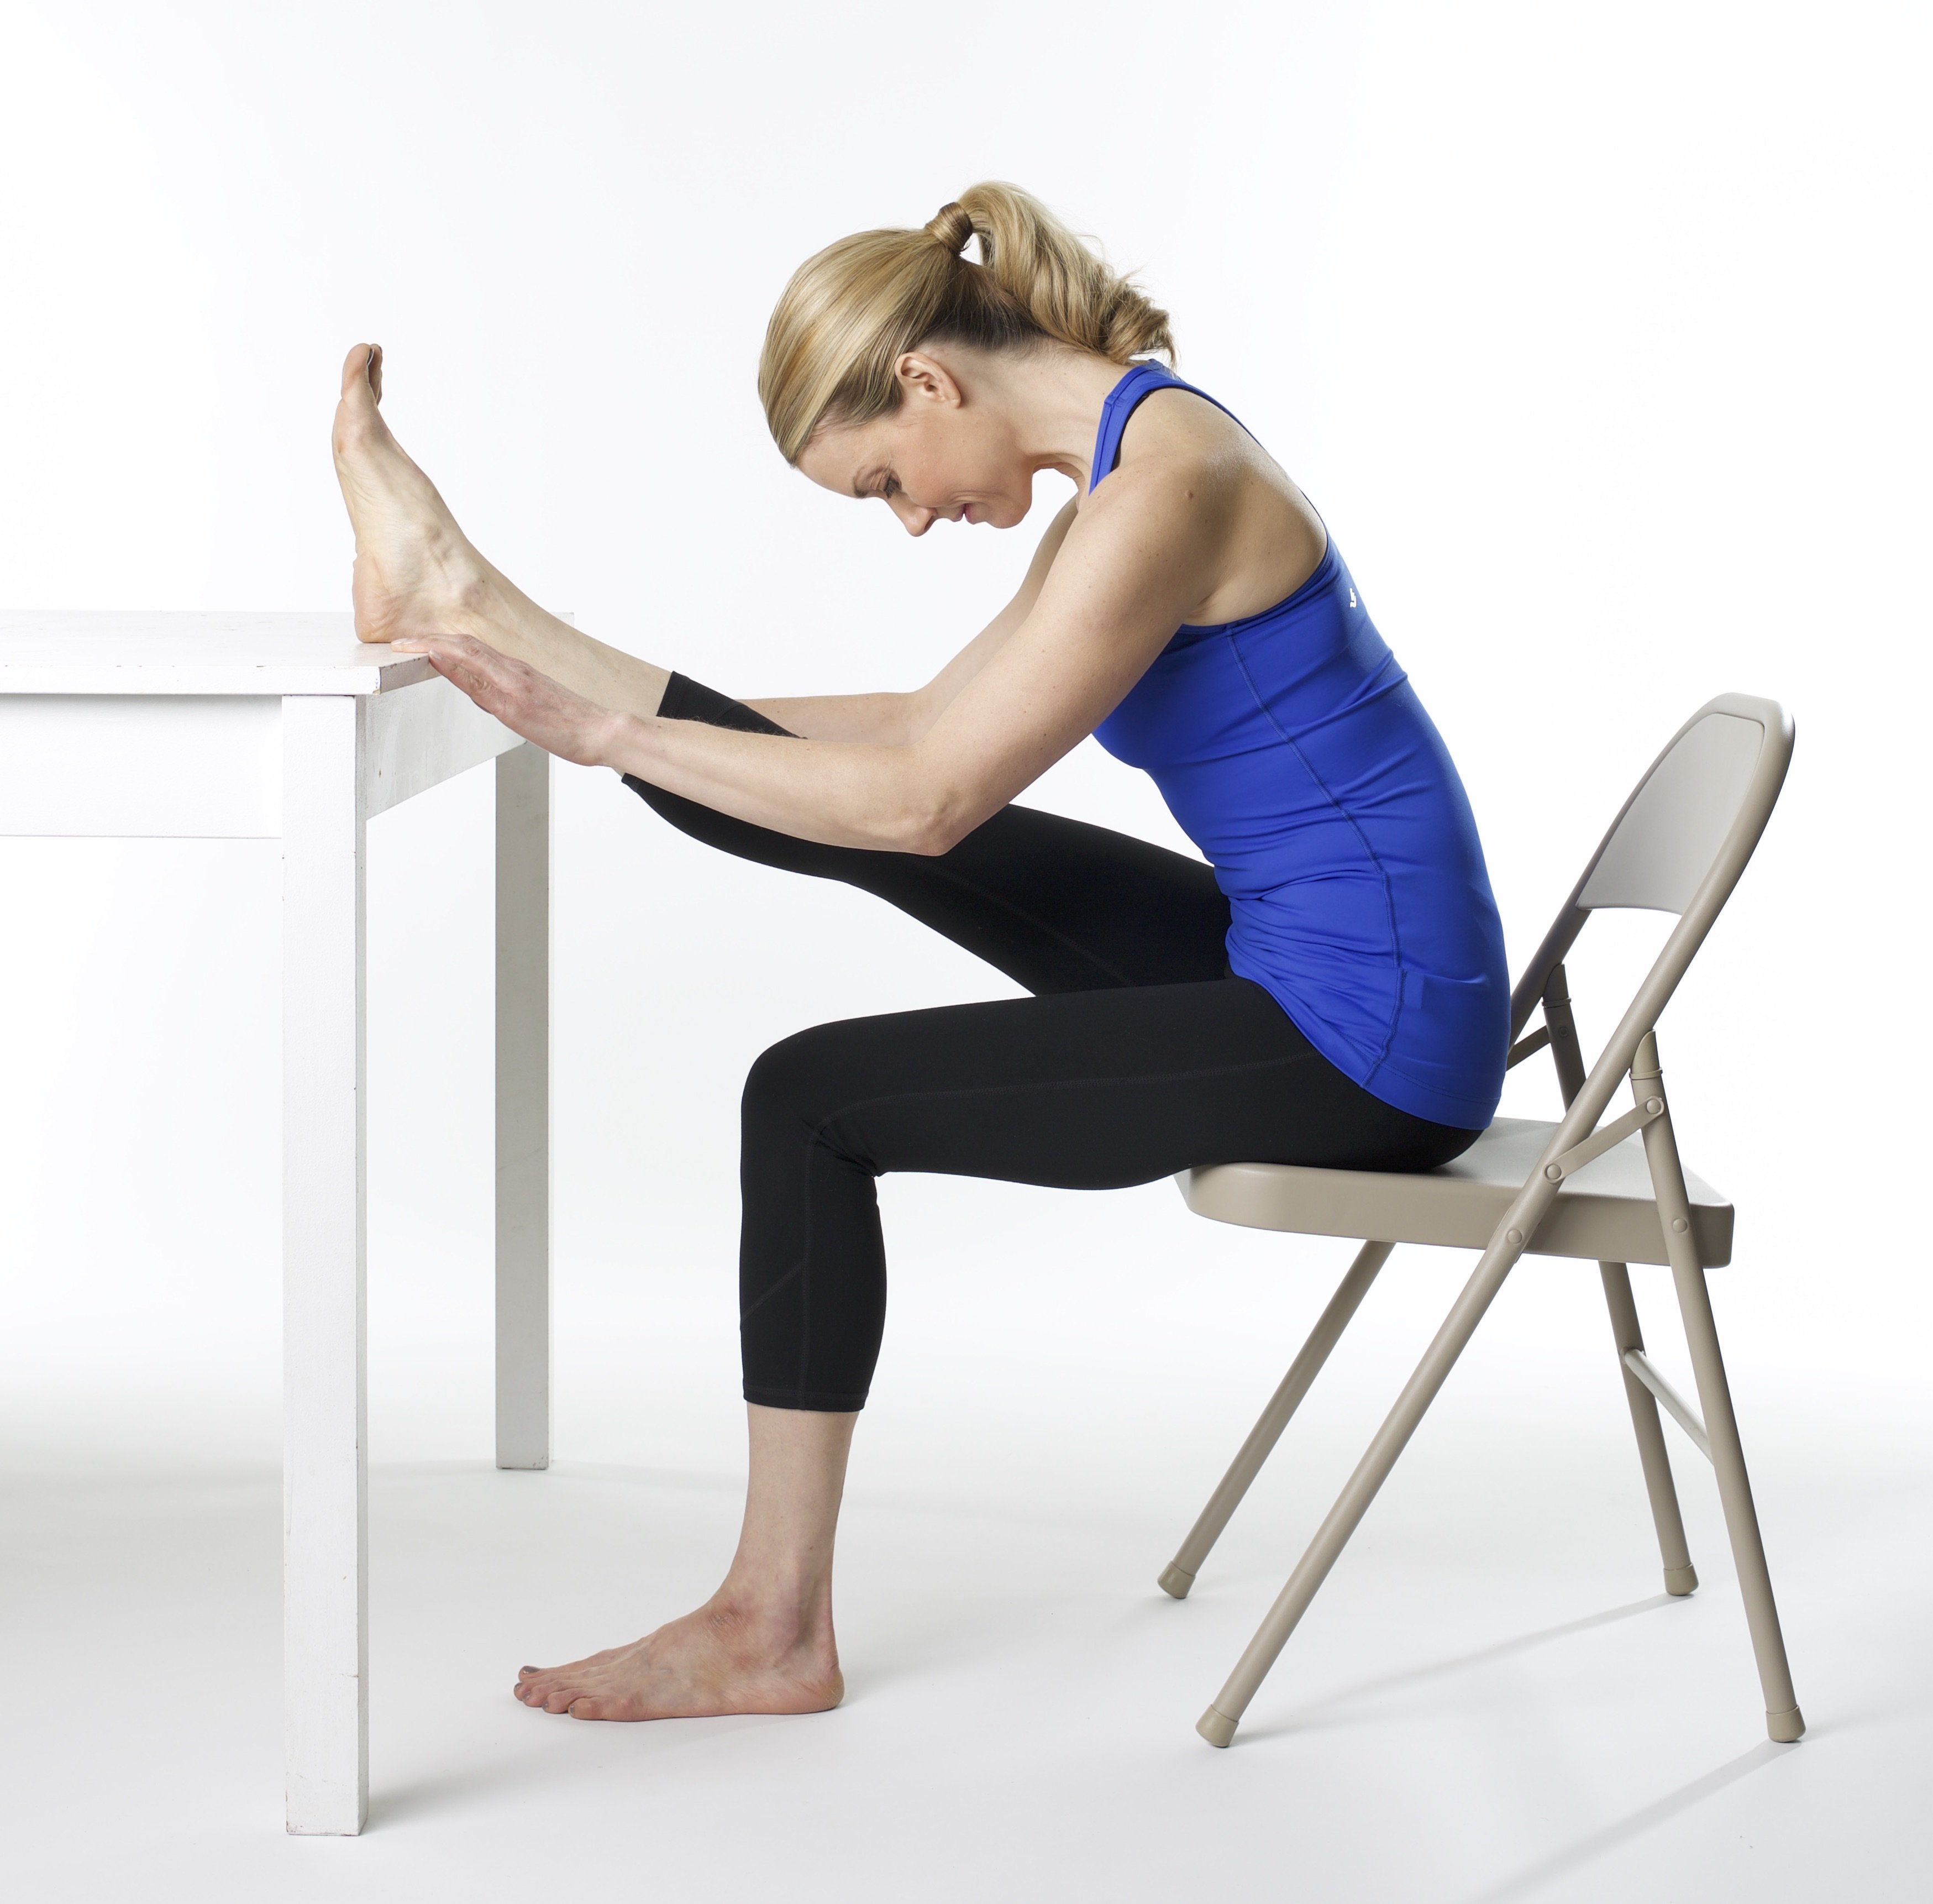 chair exercises at work office india yoga for the lower body: eliminate back pain and stay strong flexible - kristin mcgee